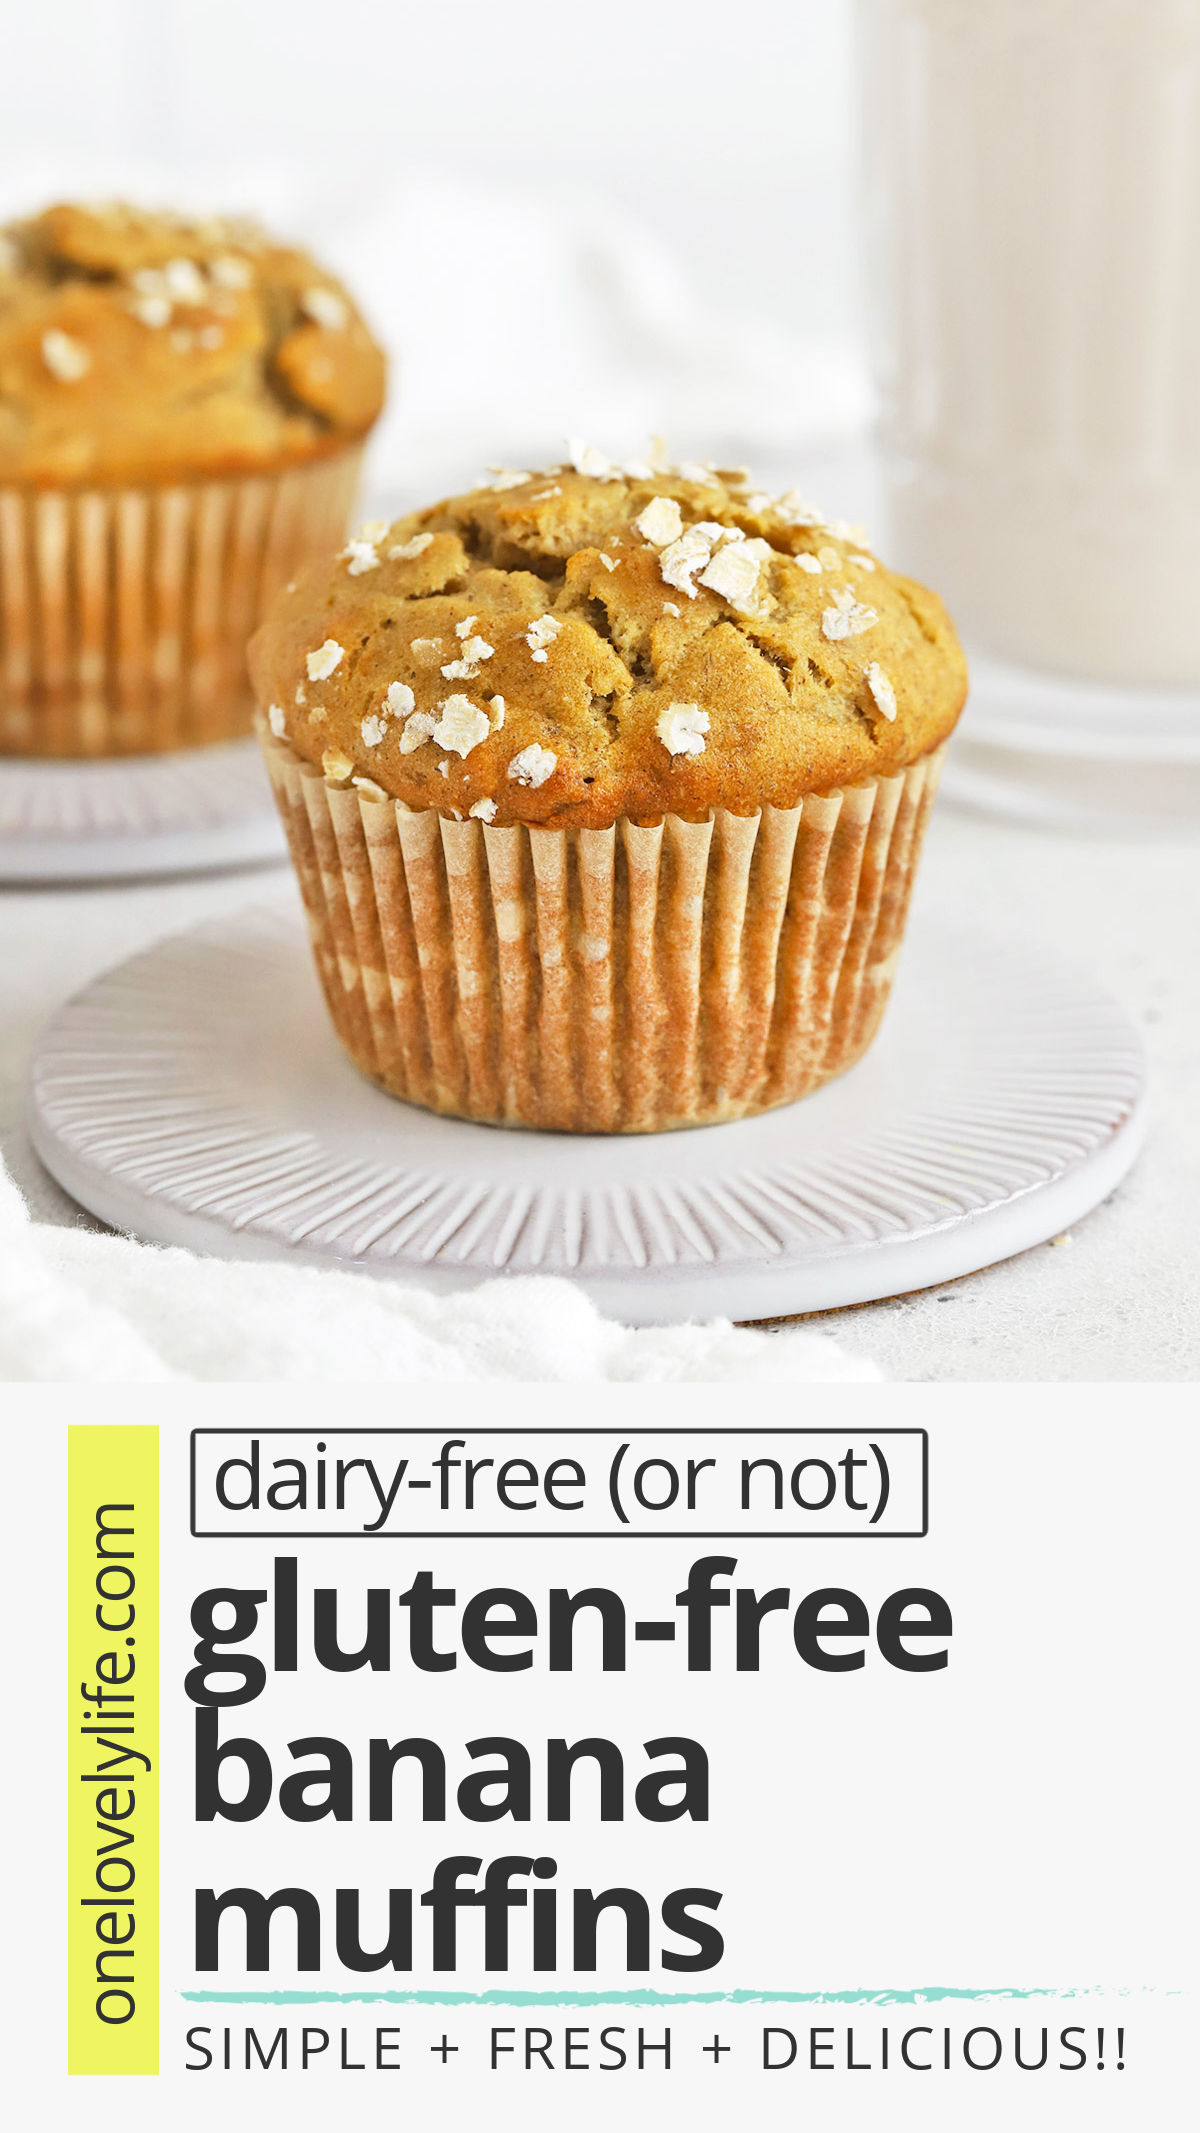 Gluten-Free Banana Muffins - This popular banana muffin recipe is the BEST! With the golden tops and fluffy middles, you'd never know they're gluten-free and dairy-free! // Best Gluten Free Banana Muffins Recipe // Healthy Banana Muffins Recipe // Healthy Gluten Free Banana Muffins // Gluten Free Banana Oatmeal Muffins #muffins #banana #glutenfree #healthysnack #packedlunch